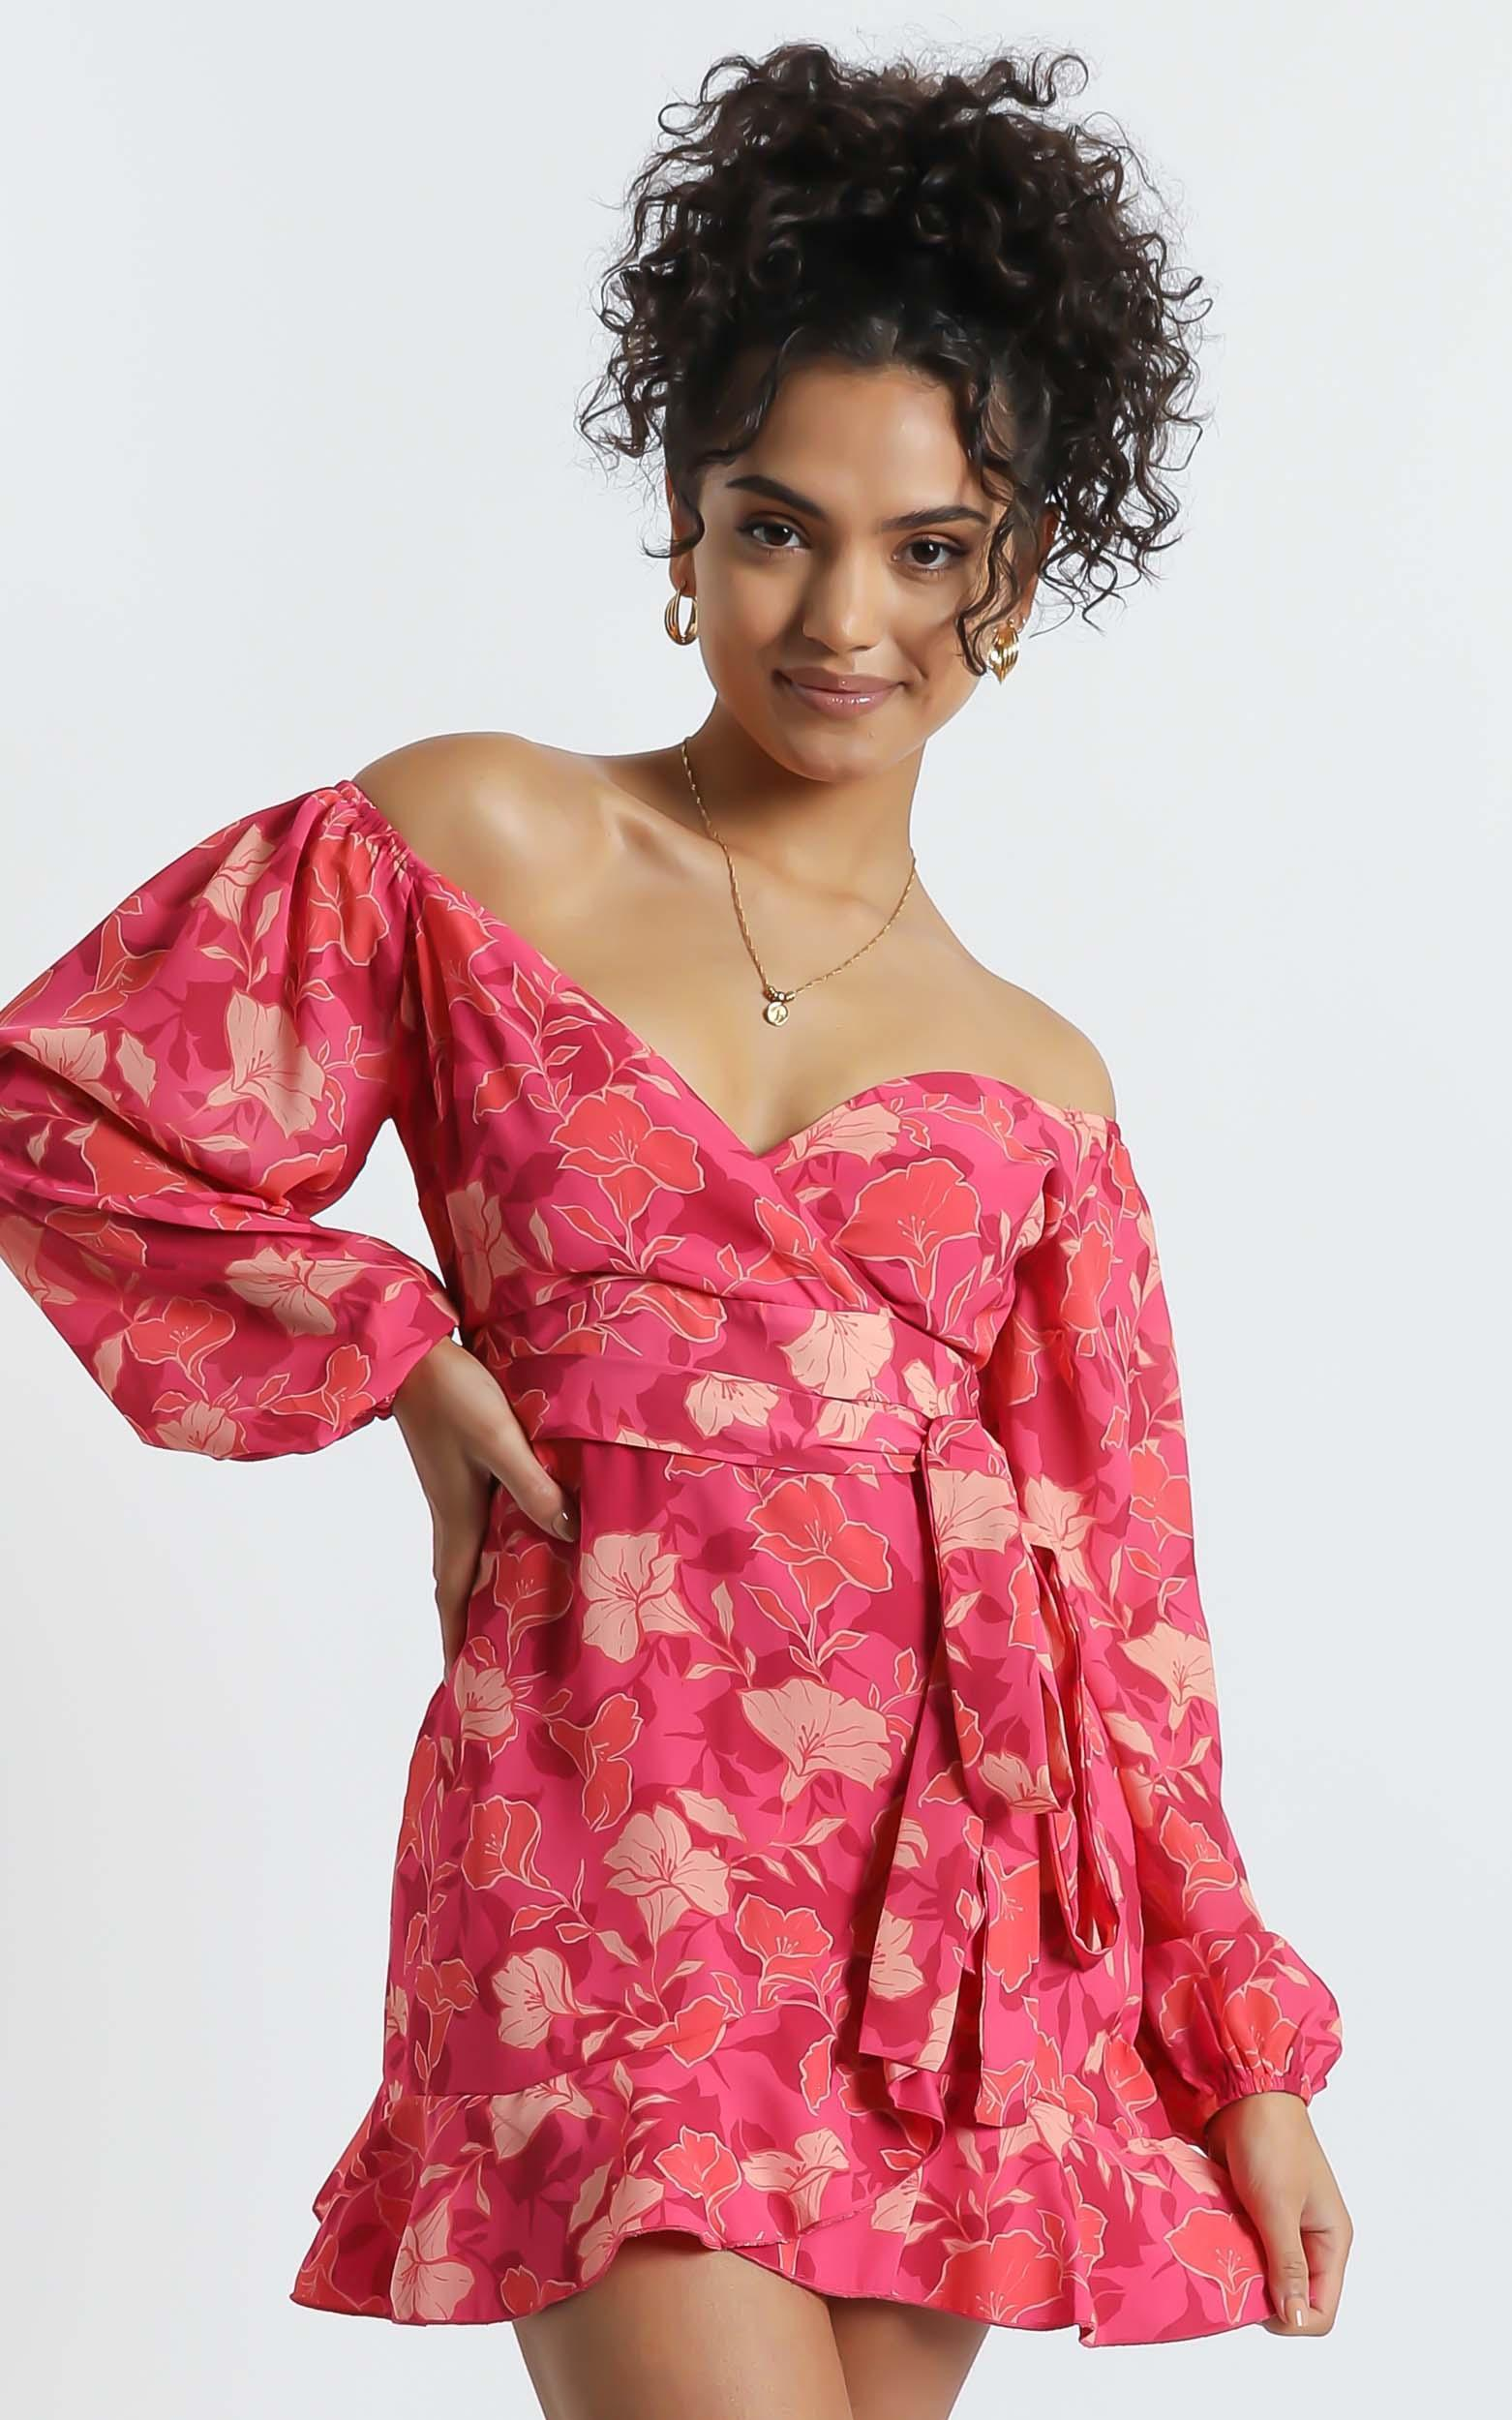 Your Sugar and Spice Dress in Berry Floral - 6 (XS), PNK13, hi-res image number null